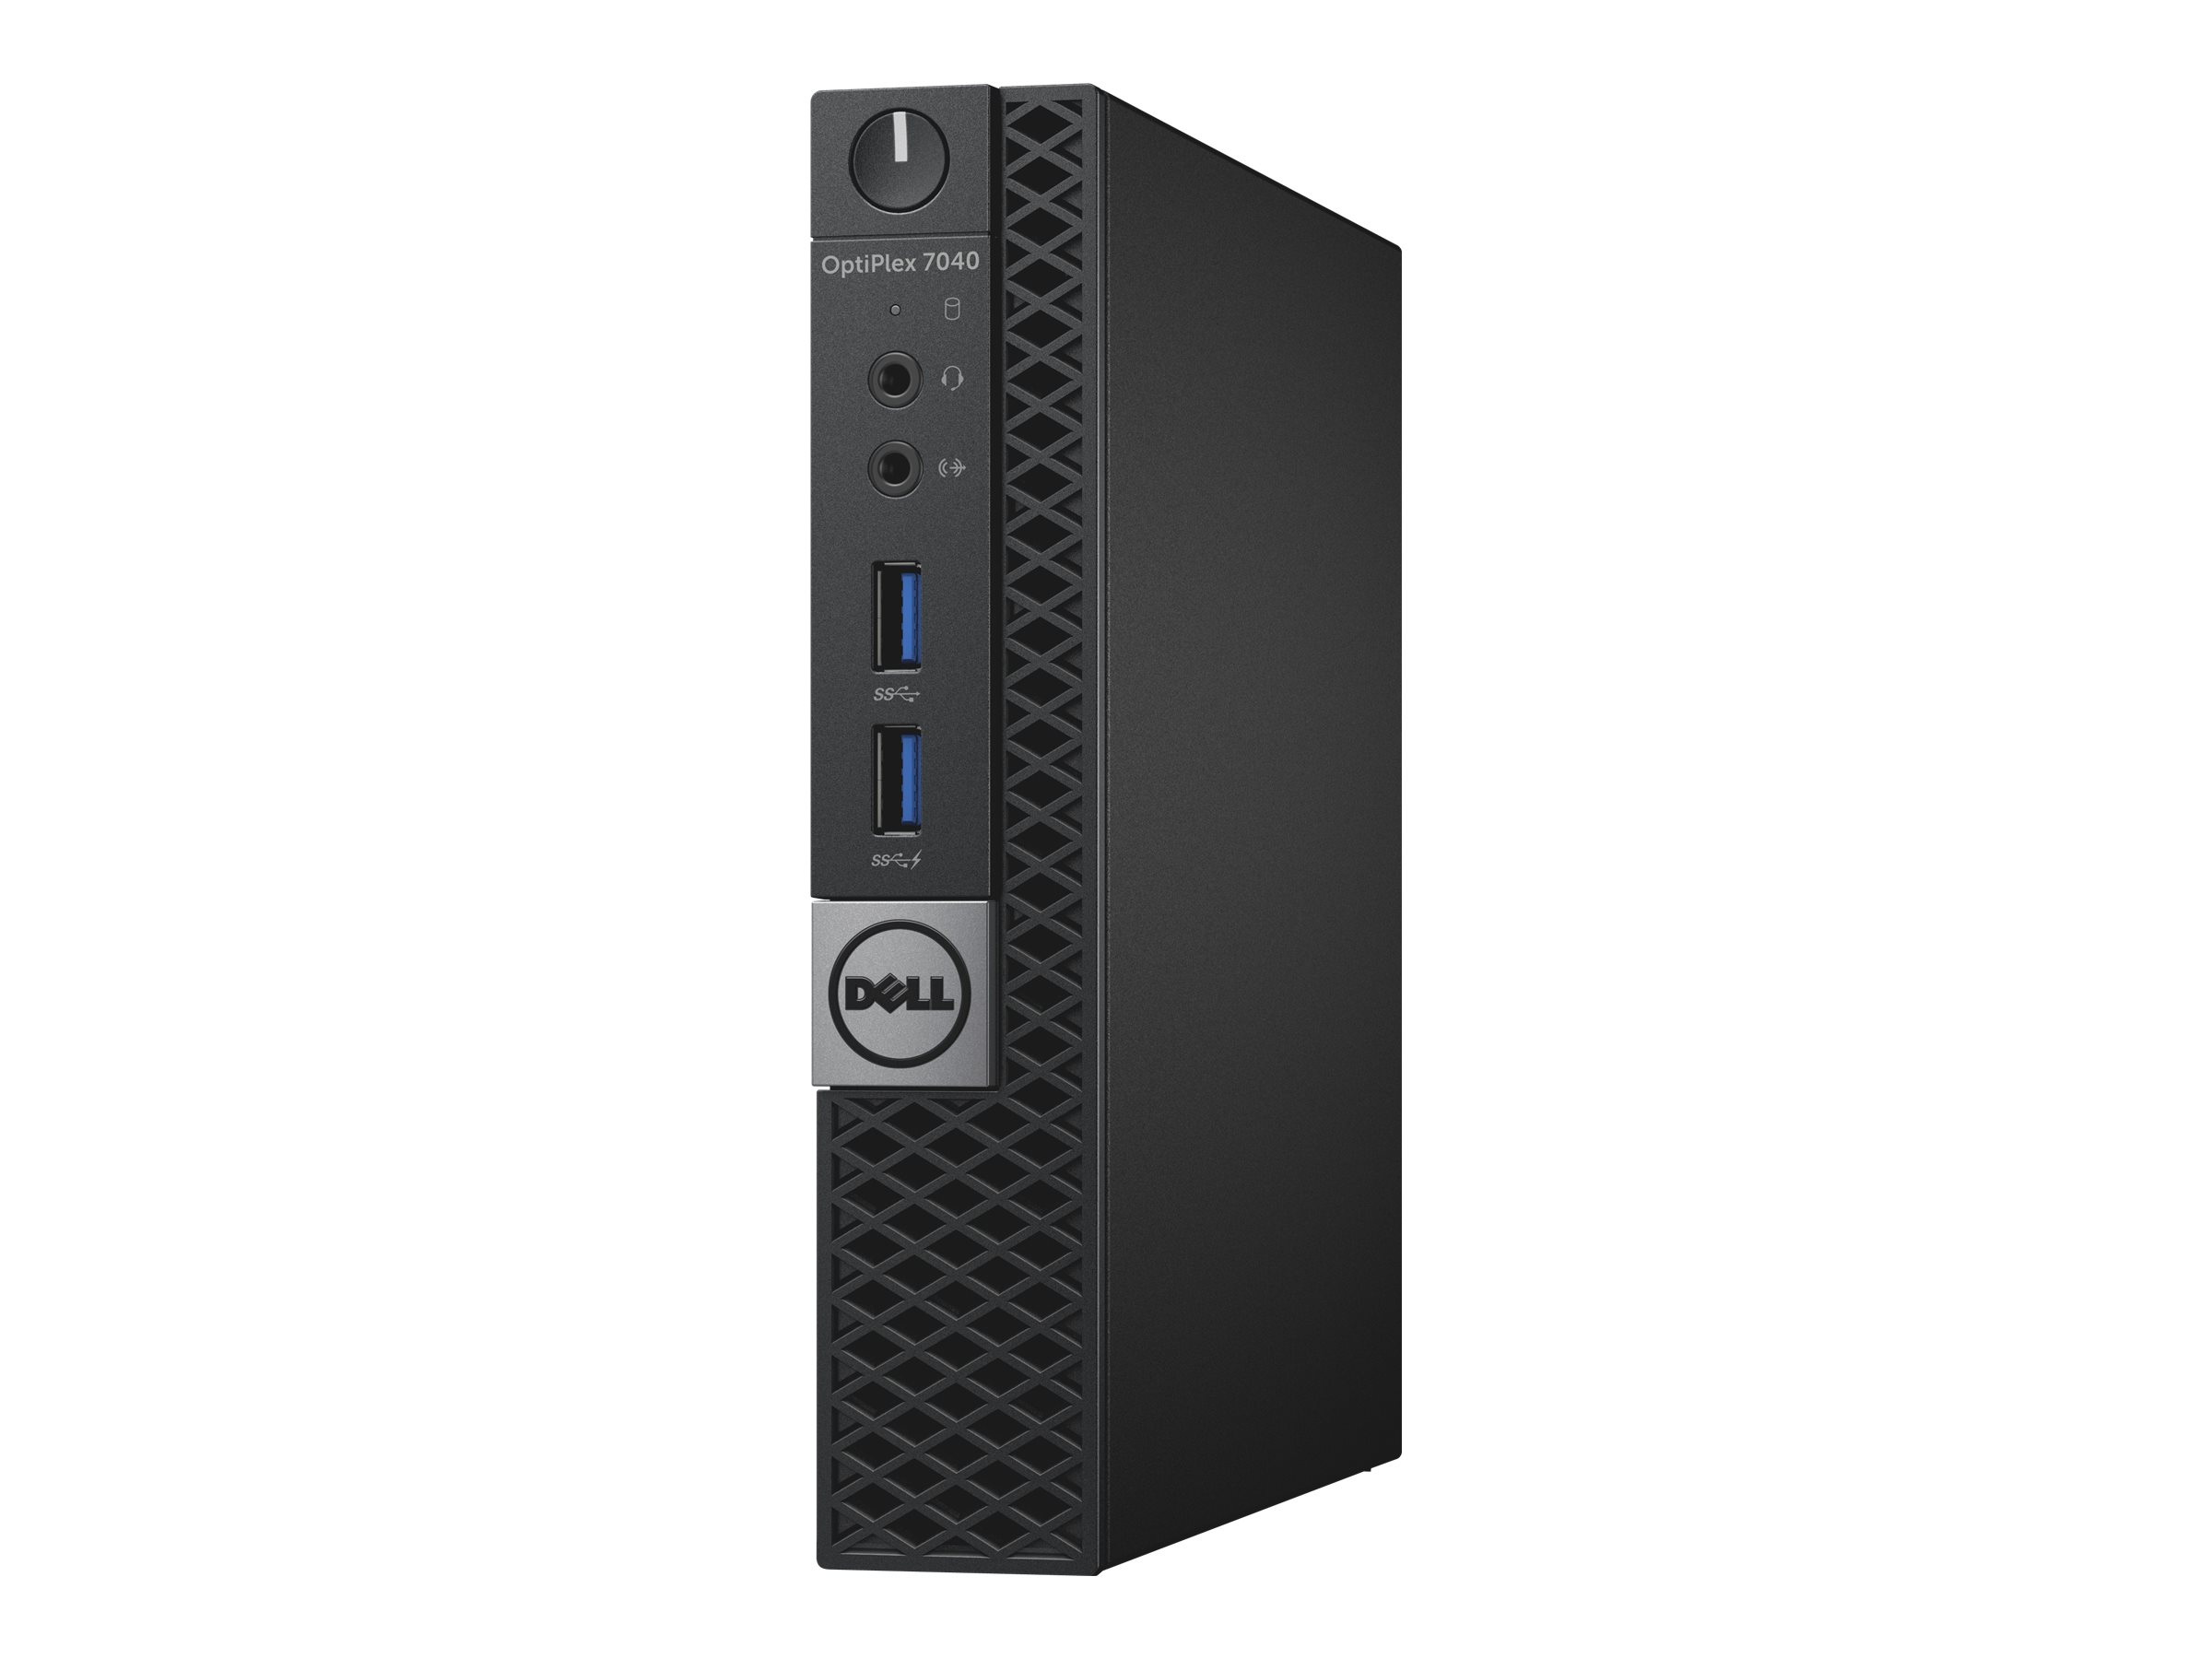 Dell OptiPlex 7040 - Micro - 1 x Core i5 6500T / 2.5 GHz - RAM 4 GB - HDD 500 GB - HD Graphics 530